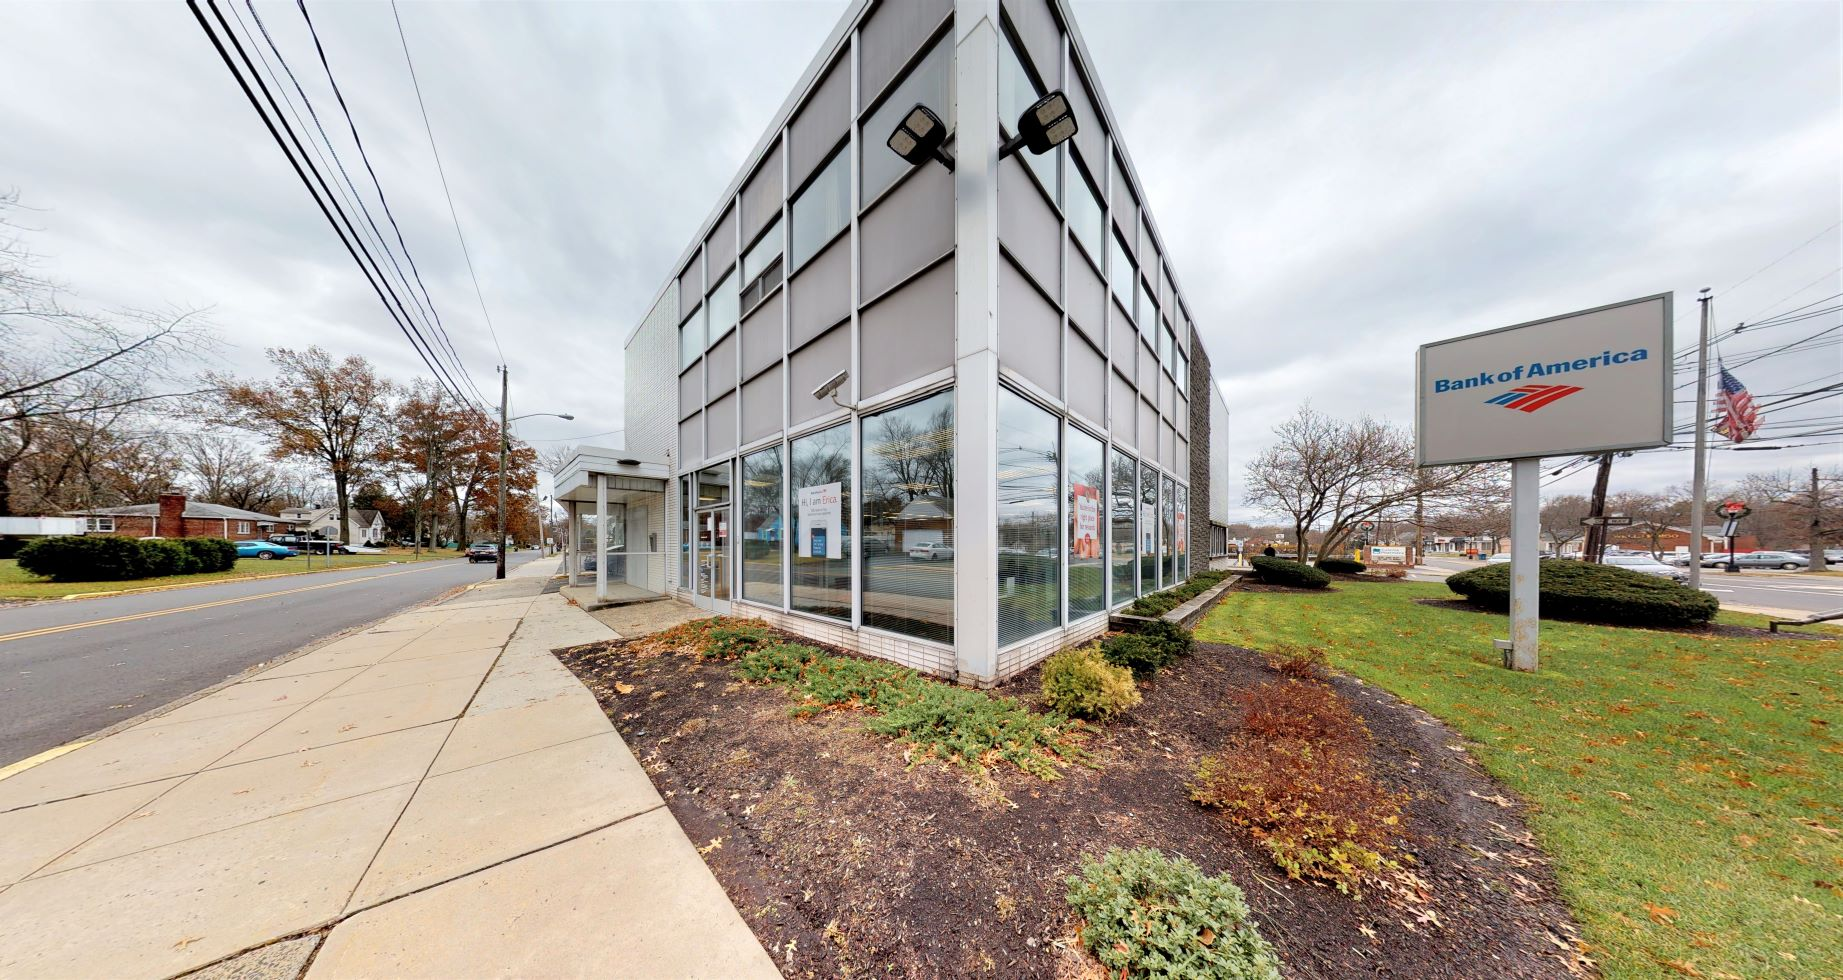 Bank of America financial center with drive-thru ATM | 505 Inman Ave, Colonia, NJ 07067